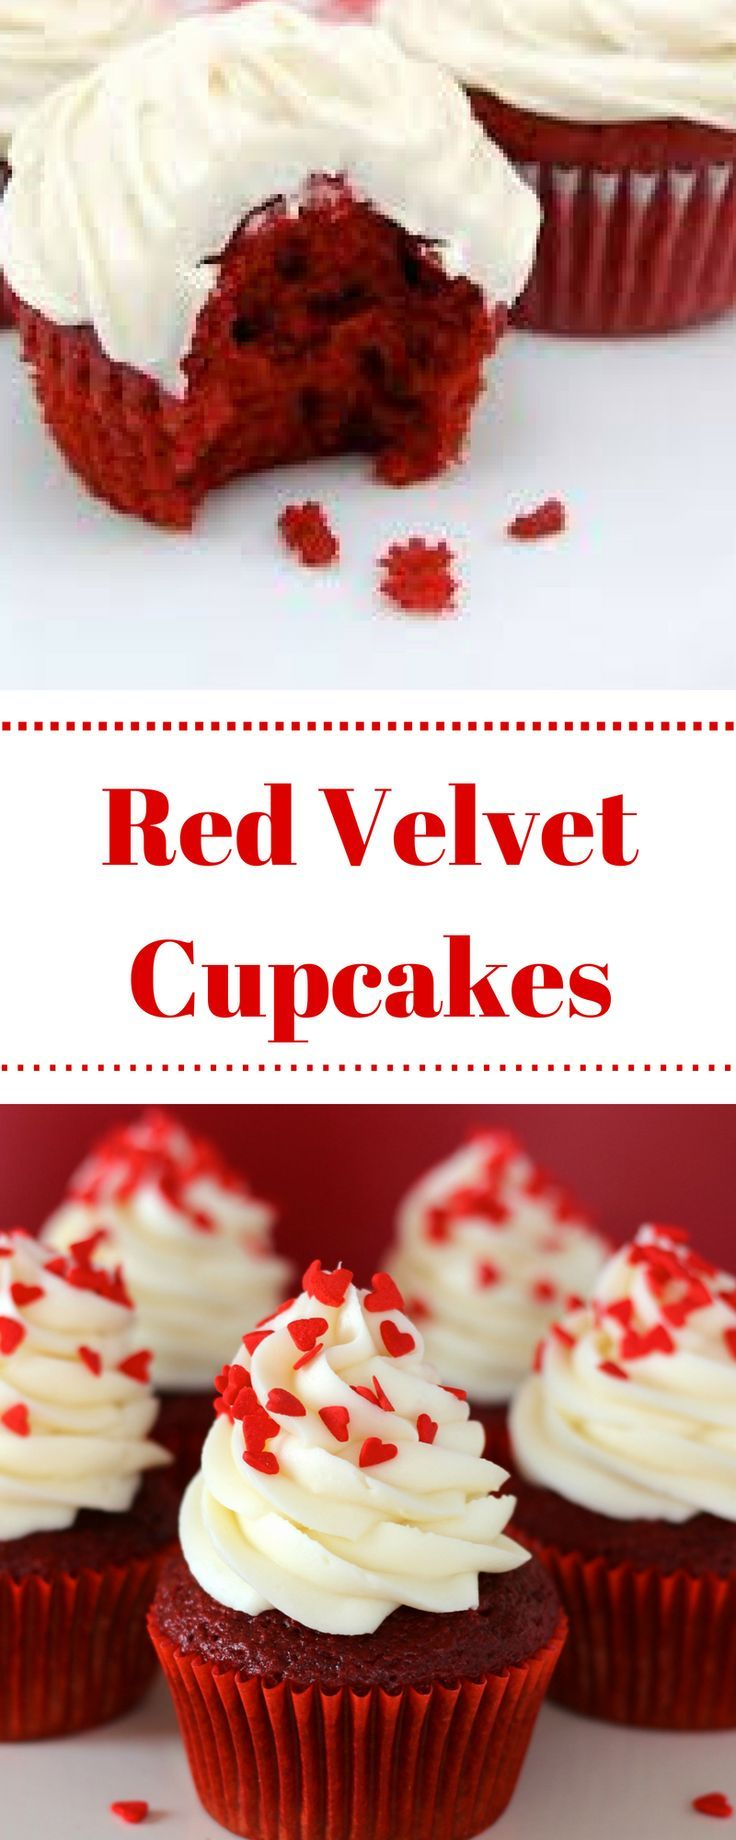 Red Velvet Cupcakes With Images Healthy Cupcakes Red Velvet Cupcakes Healthy Cook Books